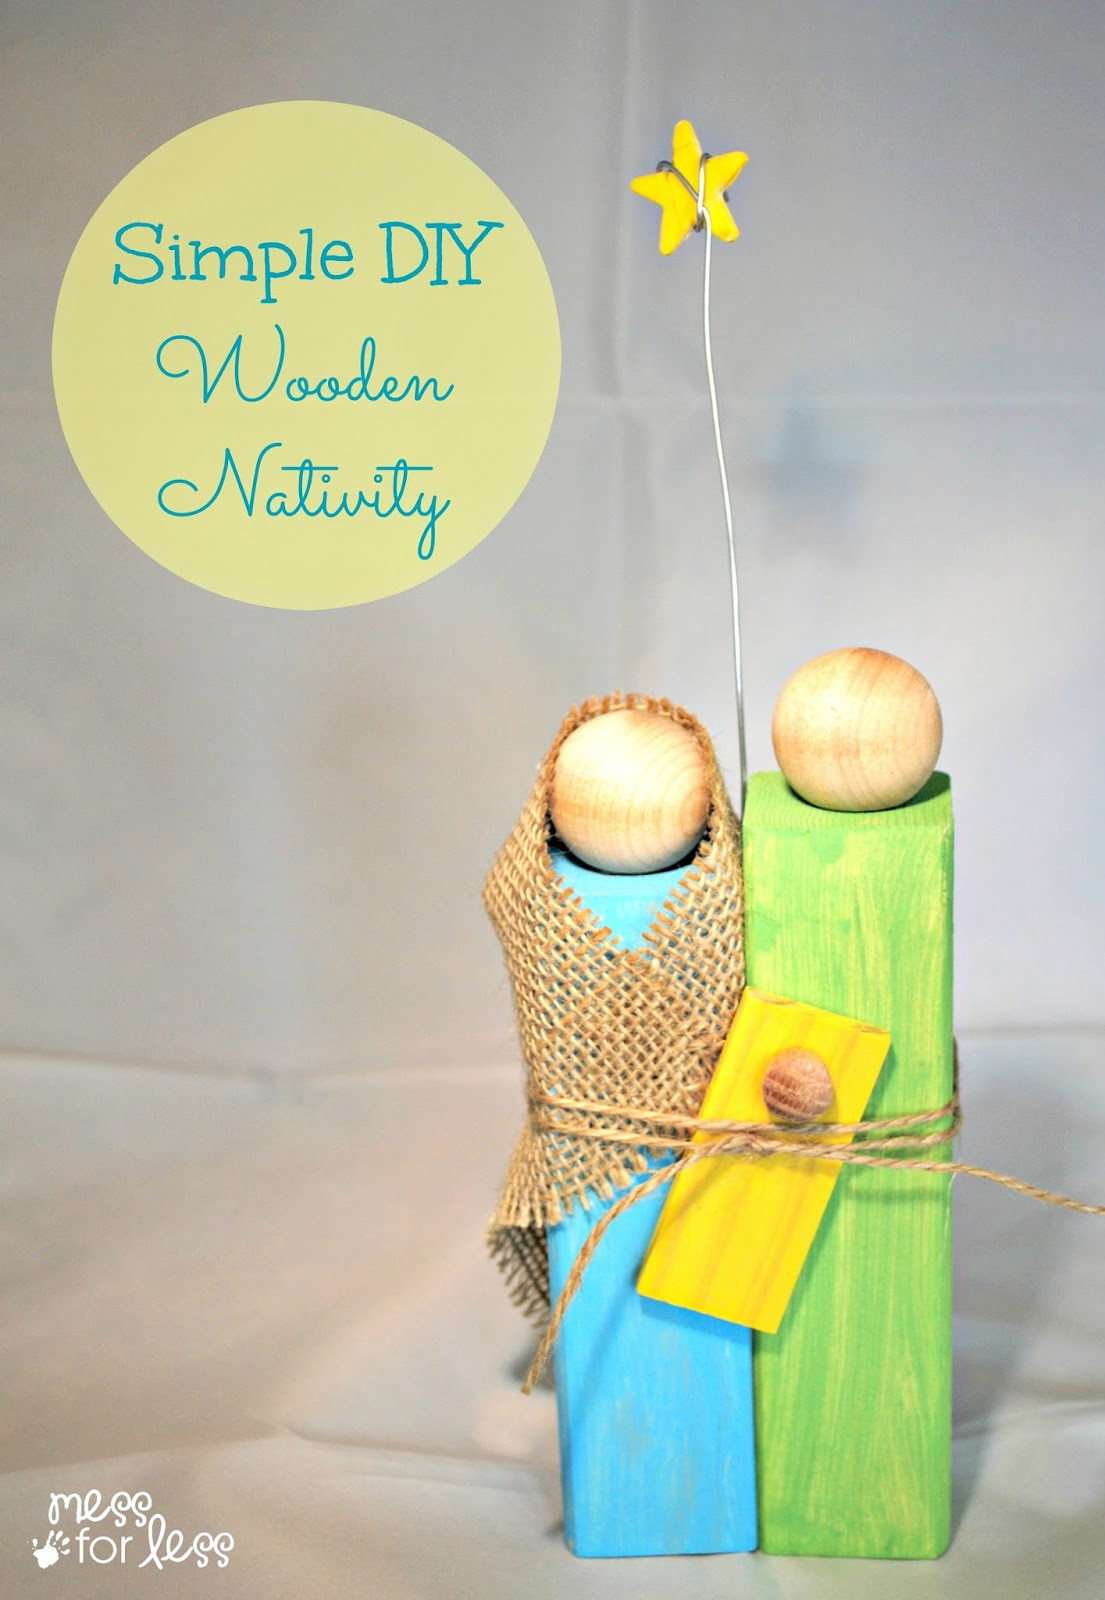 Wood Crafting Gifts  Homemade Christmas Gifts Wooden Nativity Craft Mess